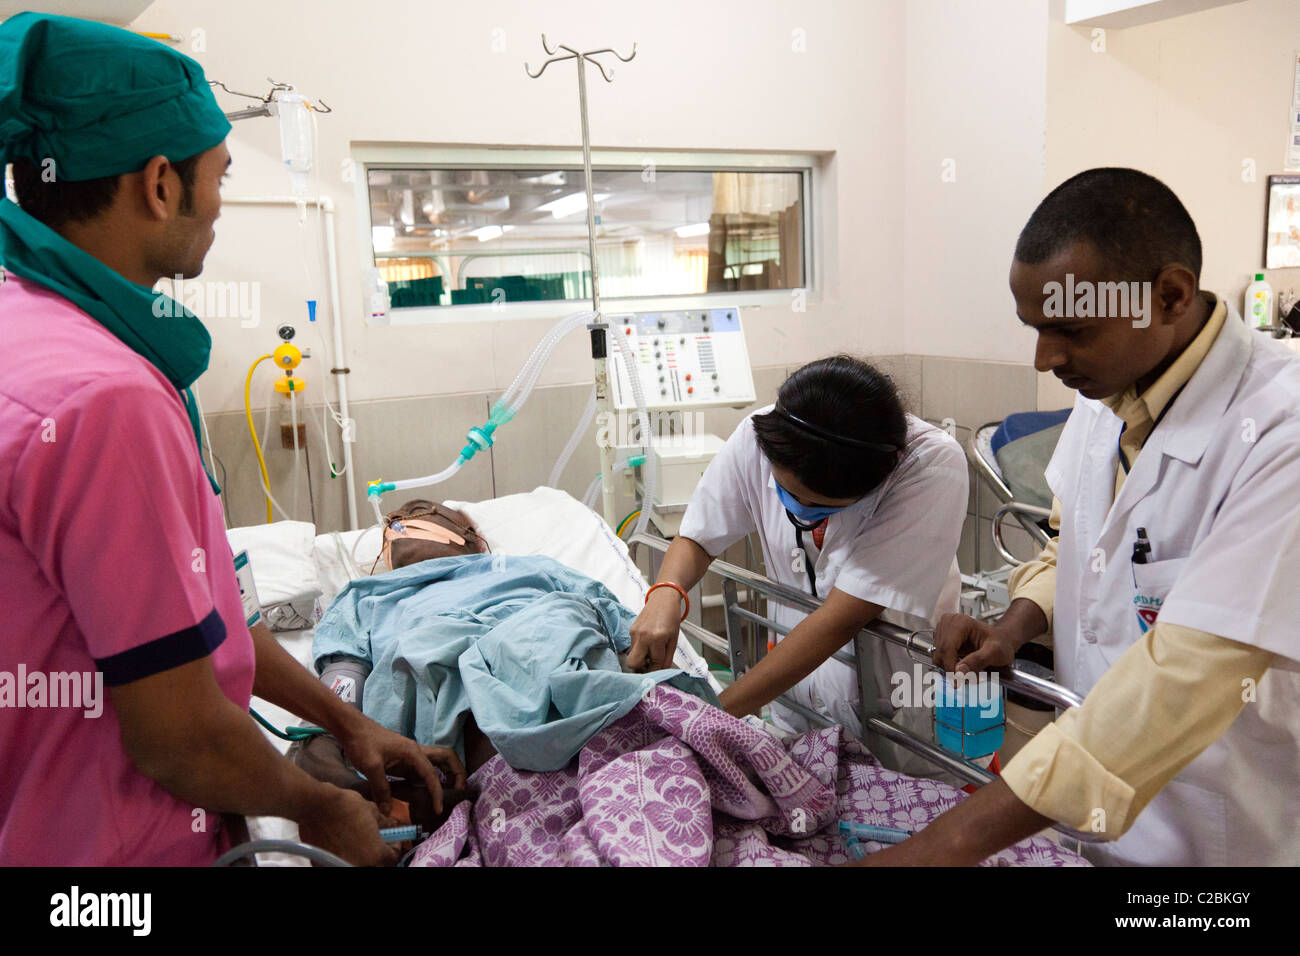 Medical staff treat a patient in an Intensive Care Unit (ICU) at Yashodhara Hospital Sholapur India - Stock Image